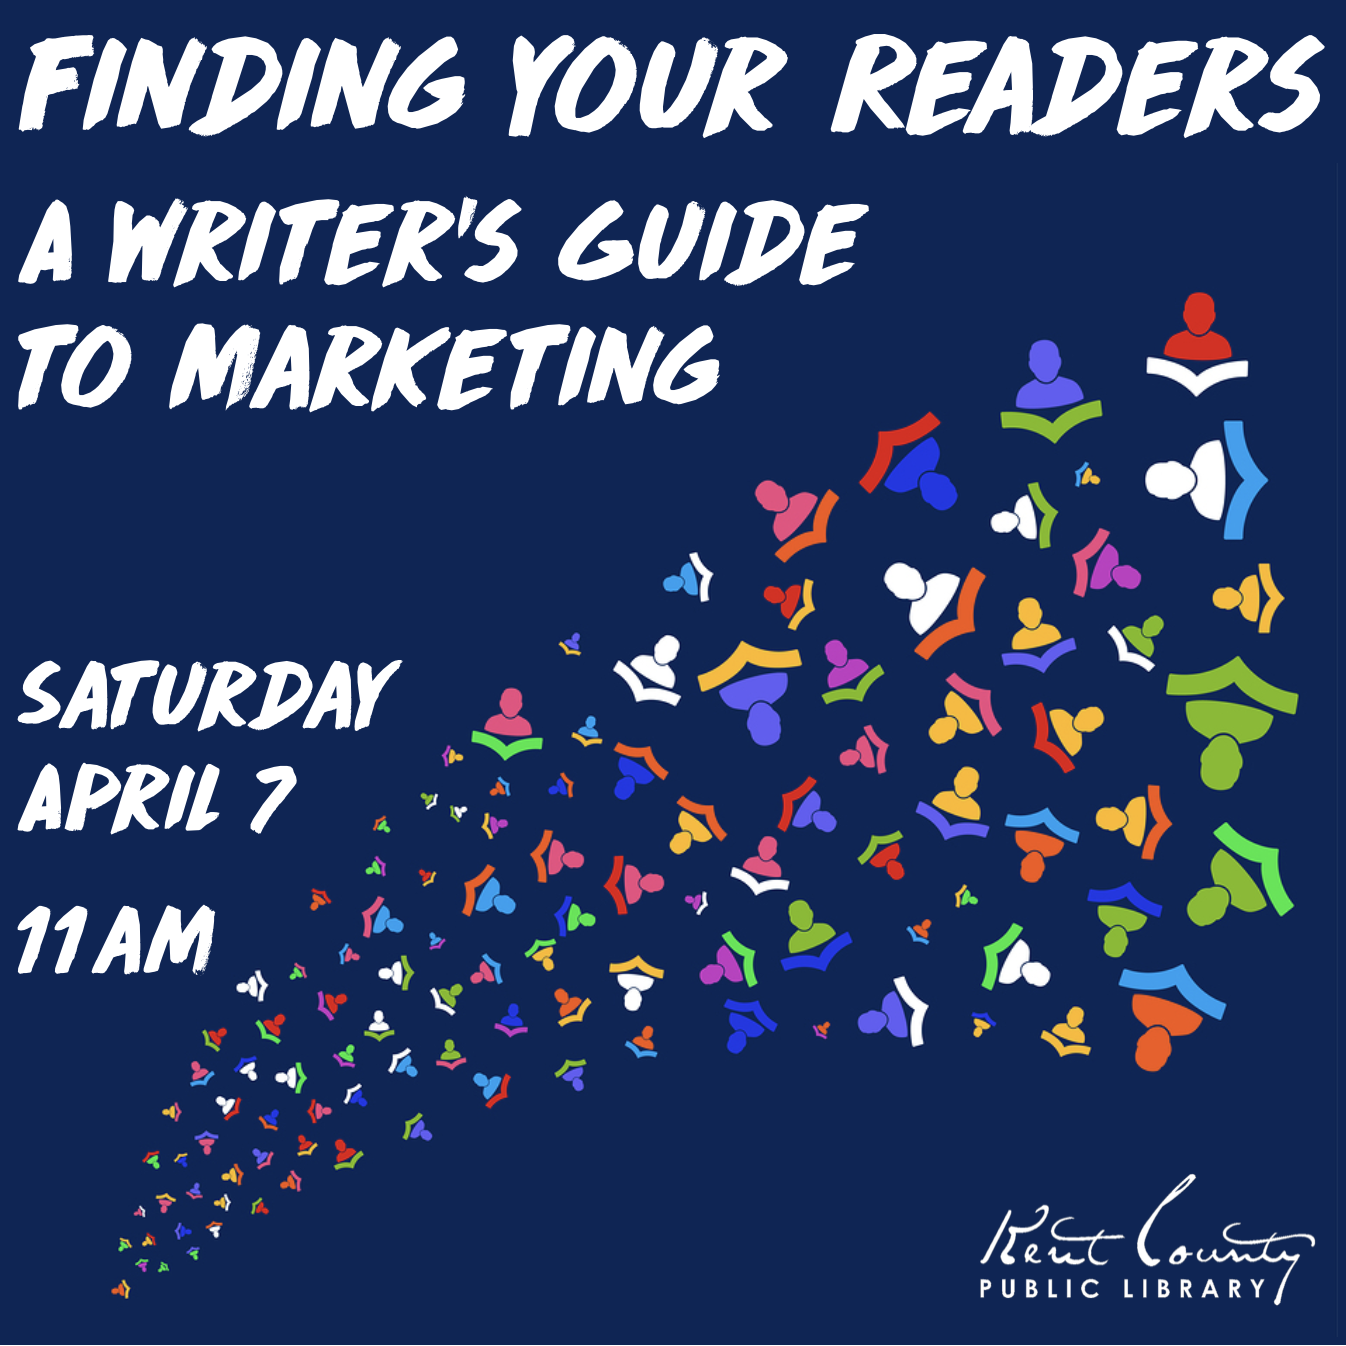 Finding Your Readers: A Writer's Guide to Marketing